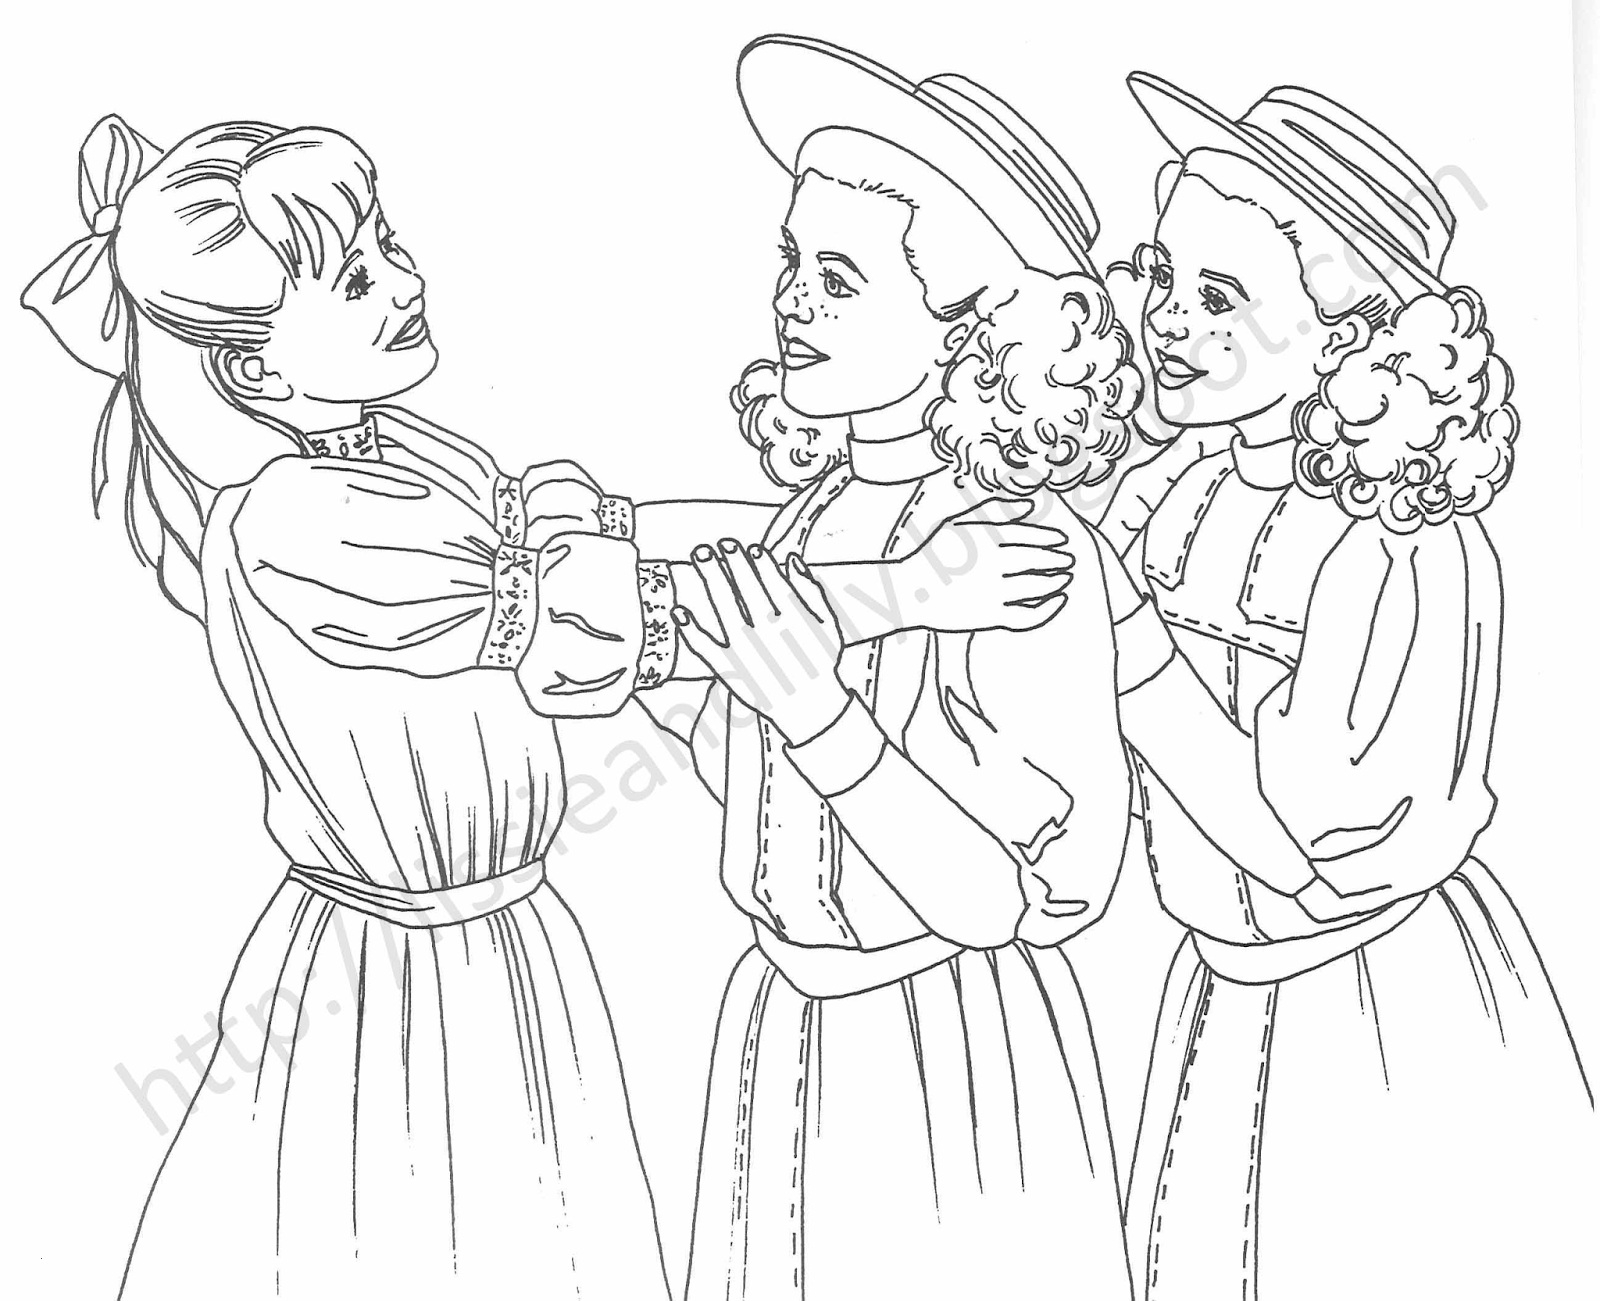 American Girl Dolls Coloring Pages  Gallery 8f - To print for your project